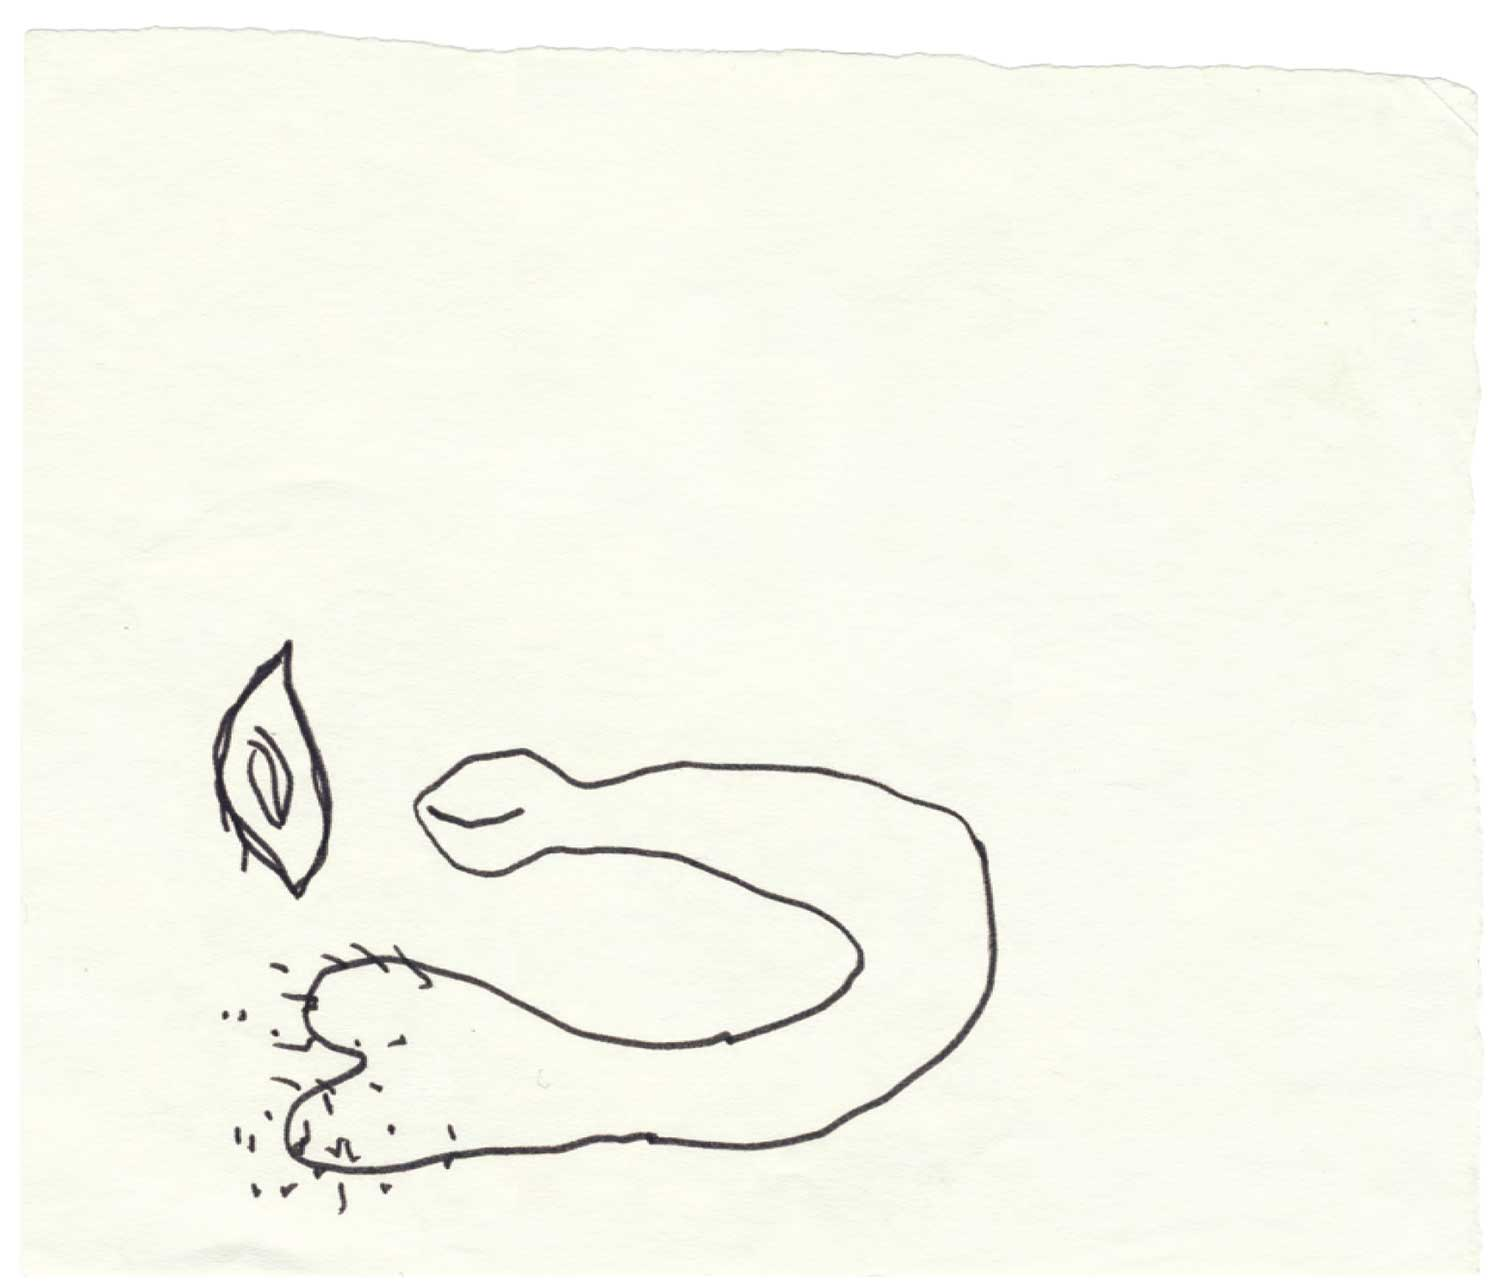 Mes dessins secrets, 1972/2011 - Additional view